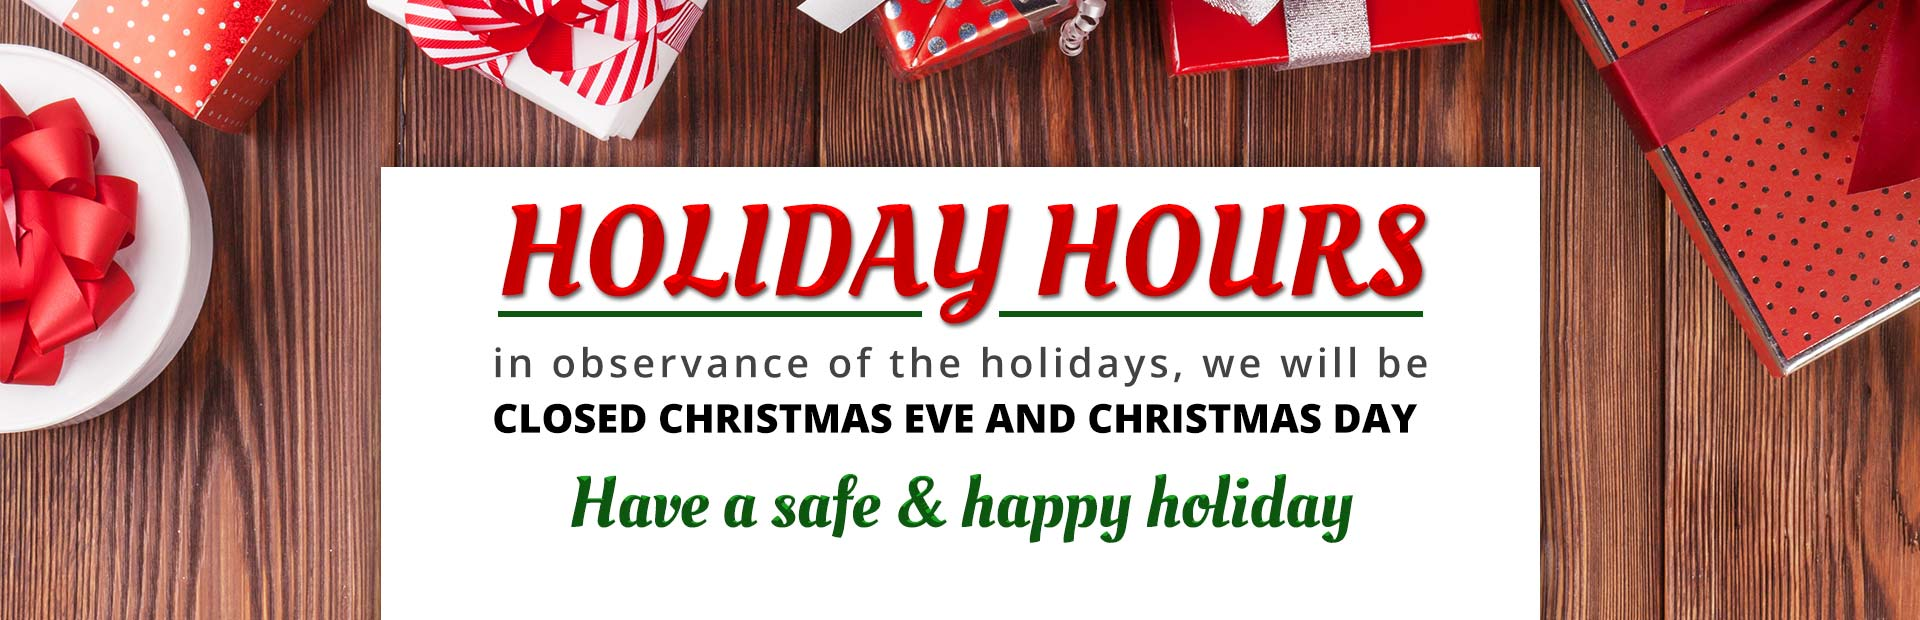 We will be closed Christmas Eve and Christmas Day.